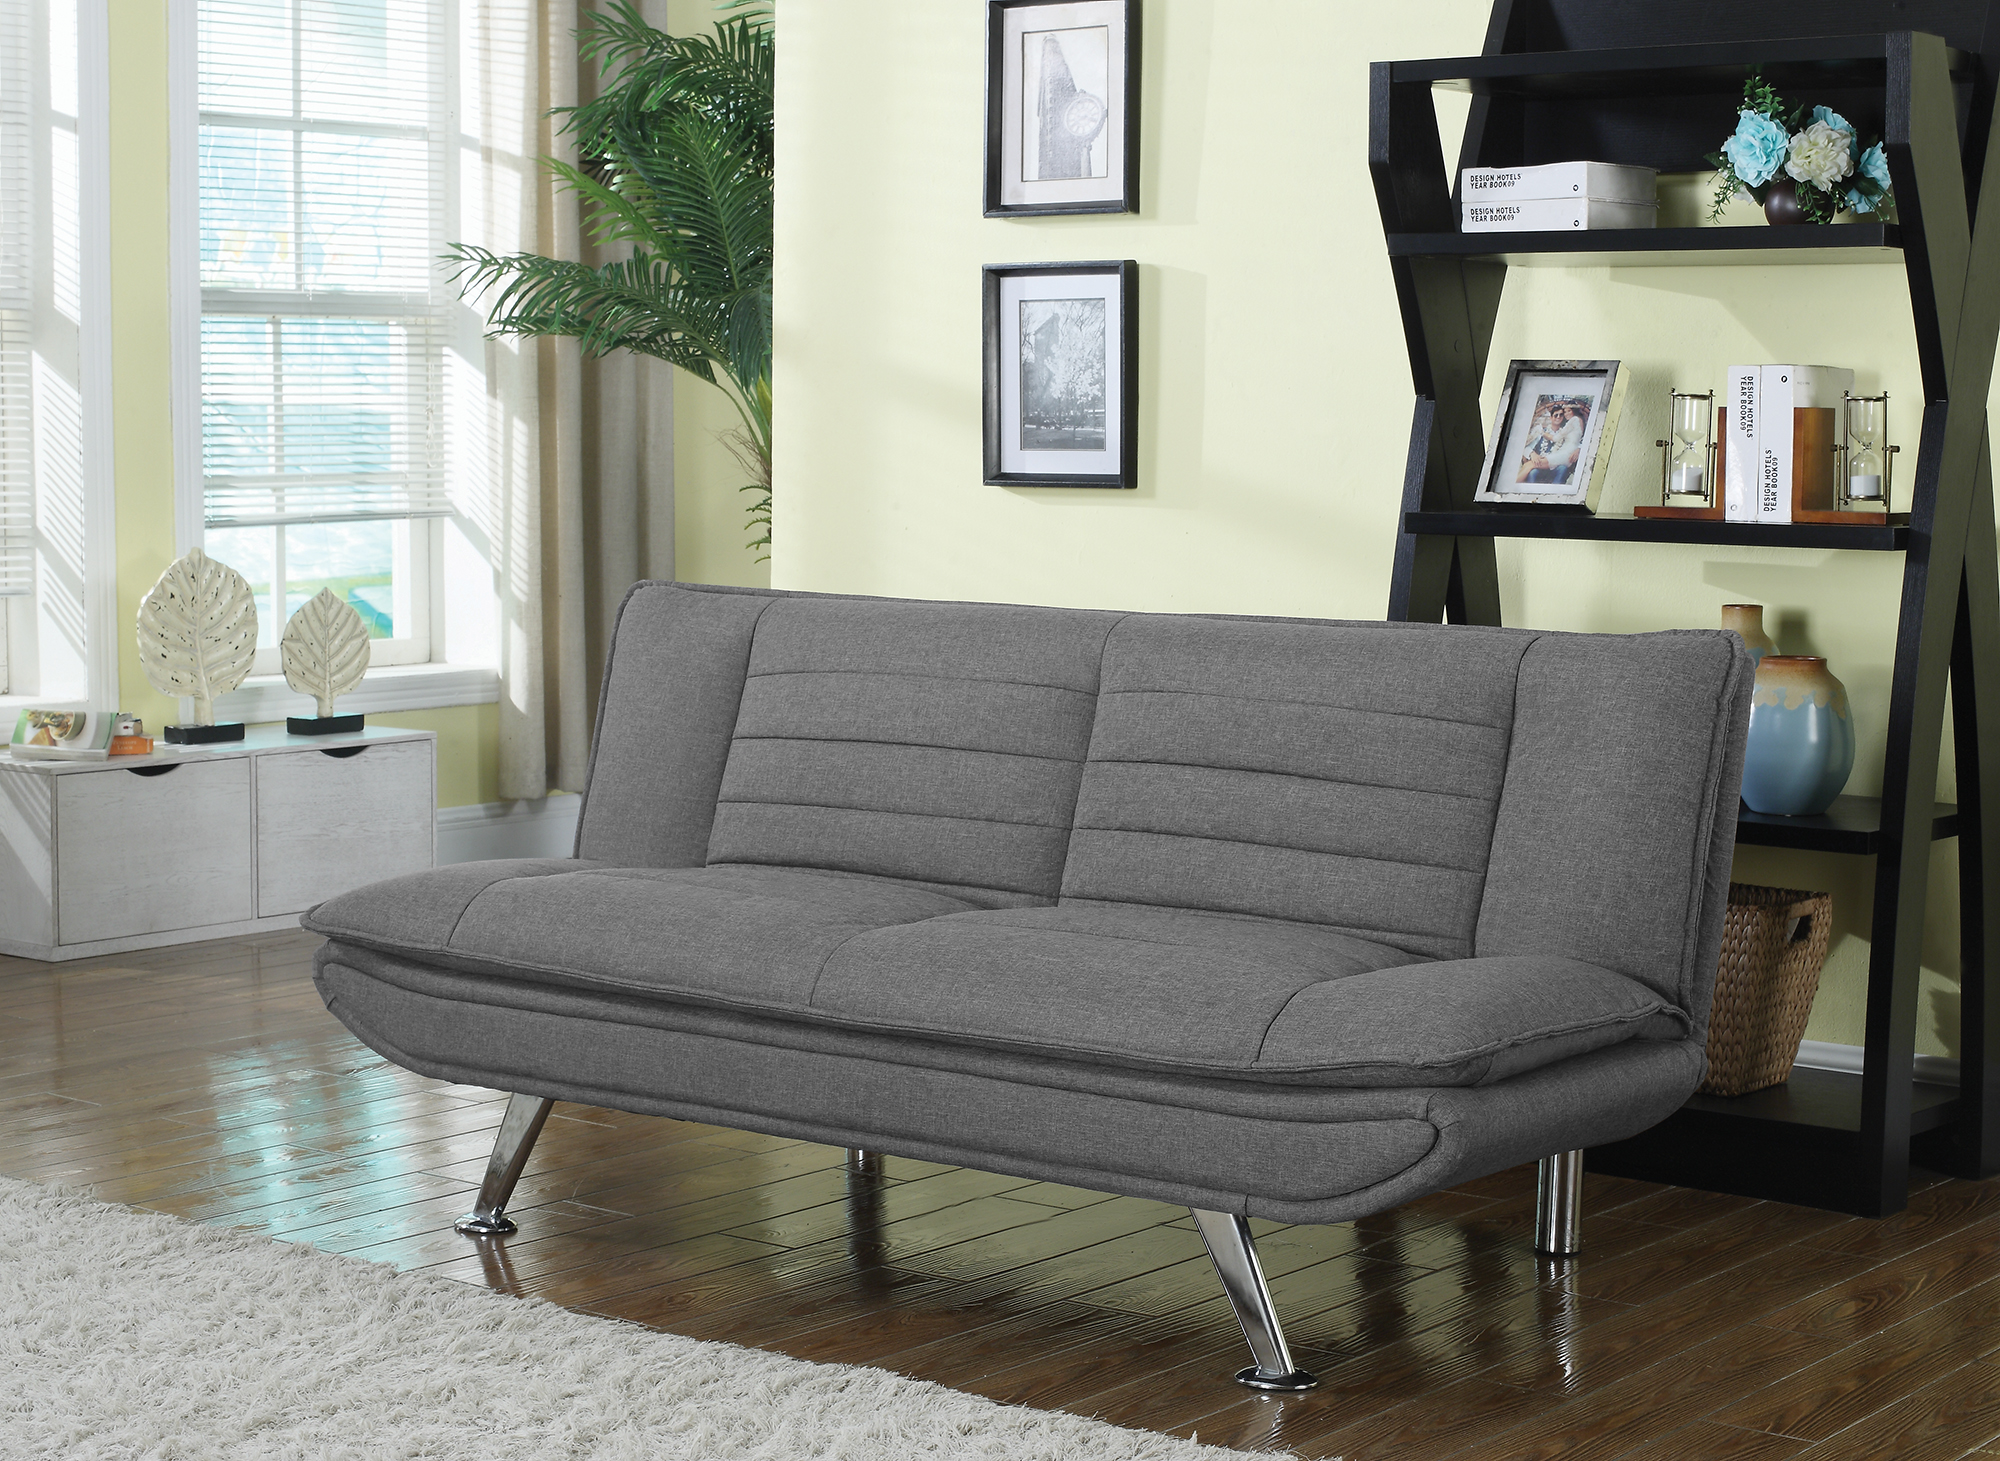 Ebay Sofa Grey Details About Coaster Fabric Sofa Bed With Grey Finish 503966